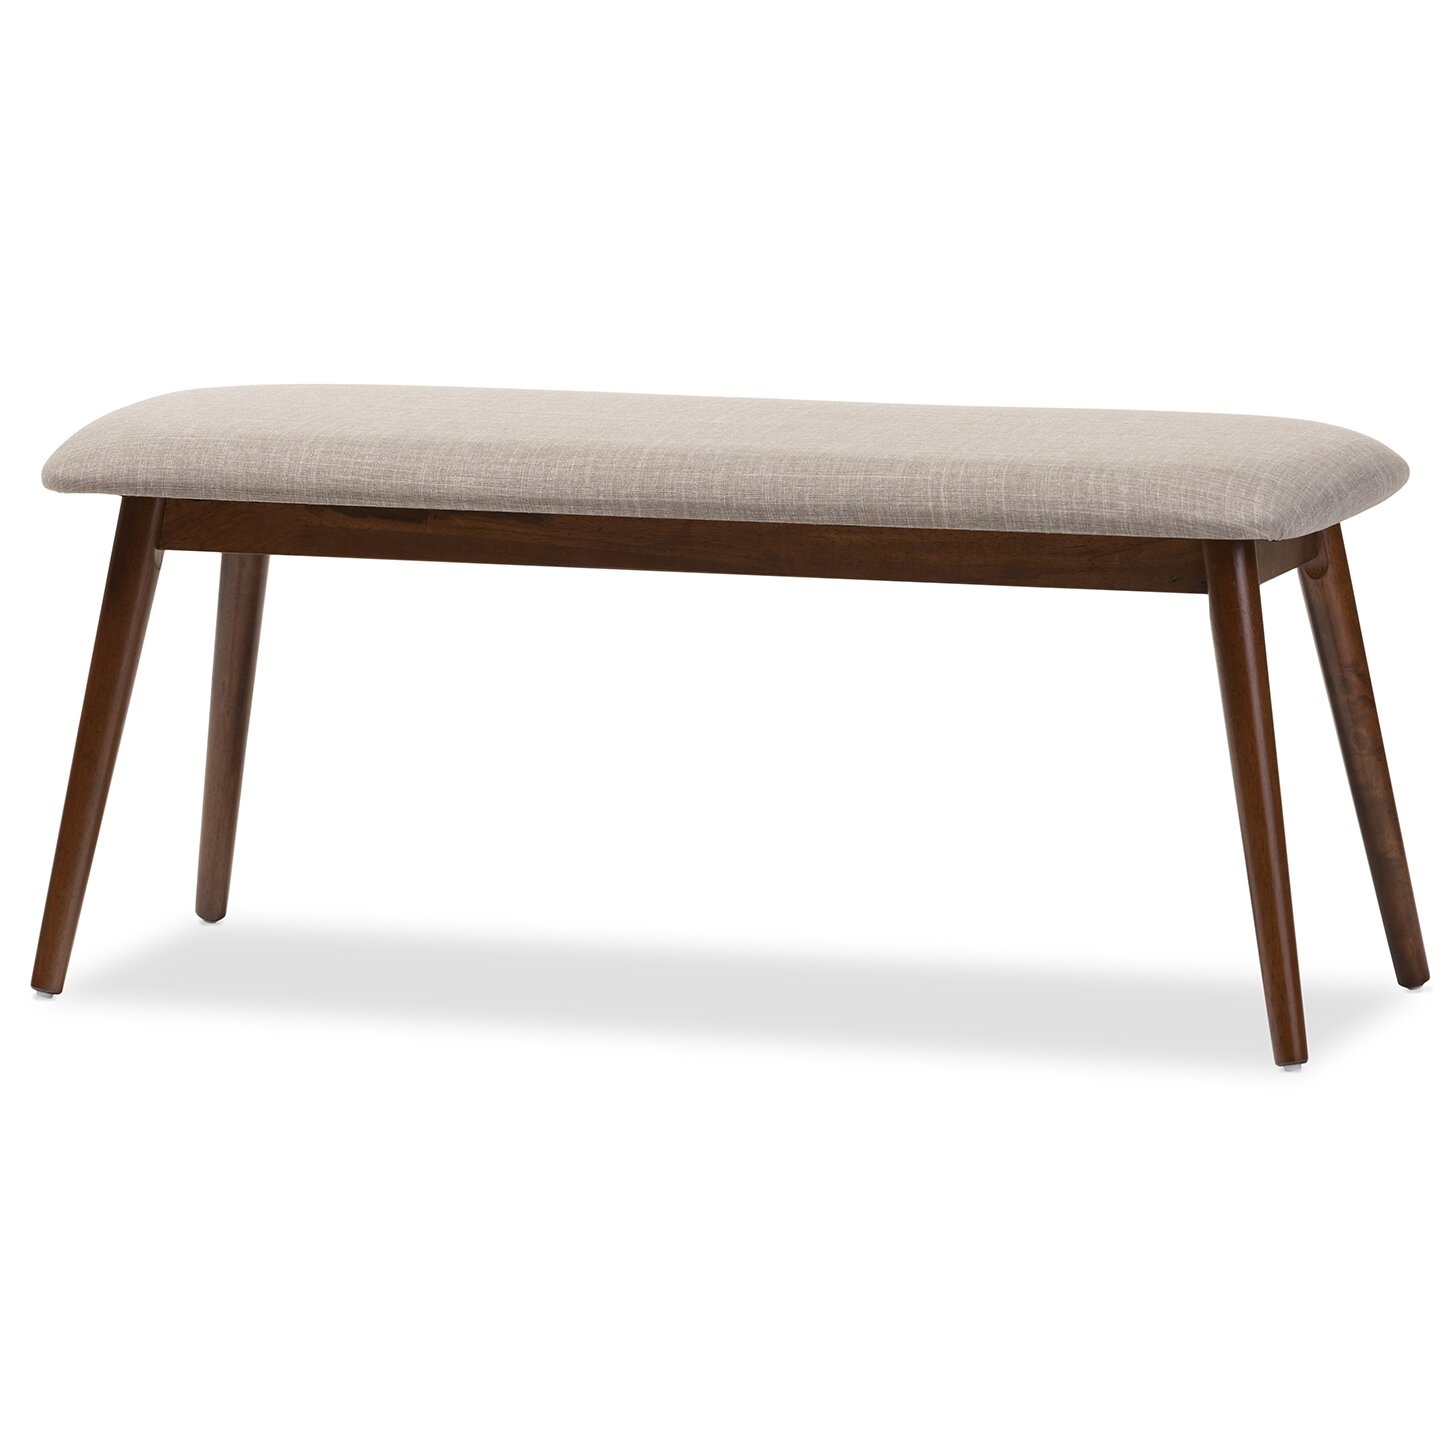 Country Kitchen Coral Springs Coral Springs Bedroom Bench Reviews Allmodern